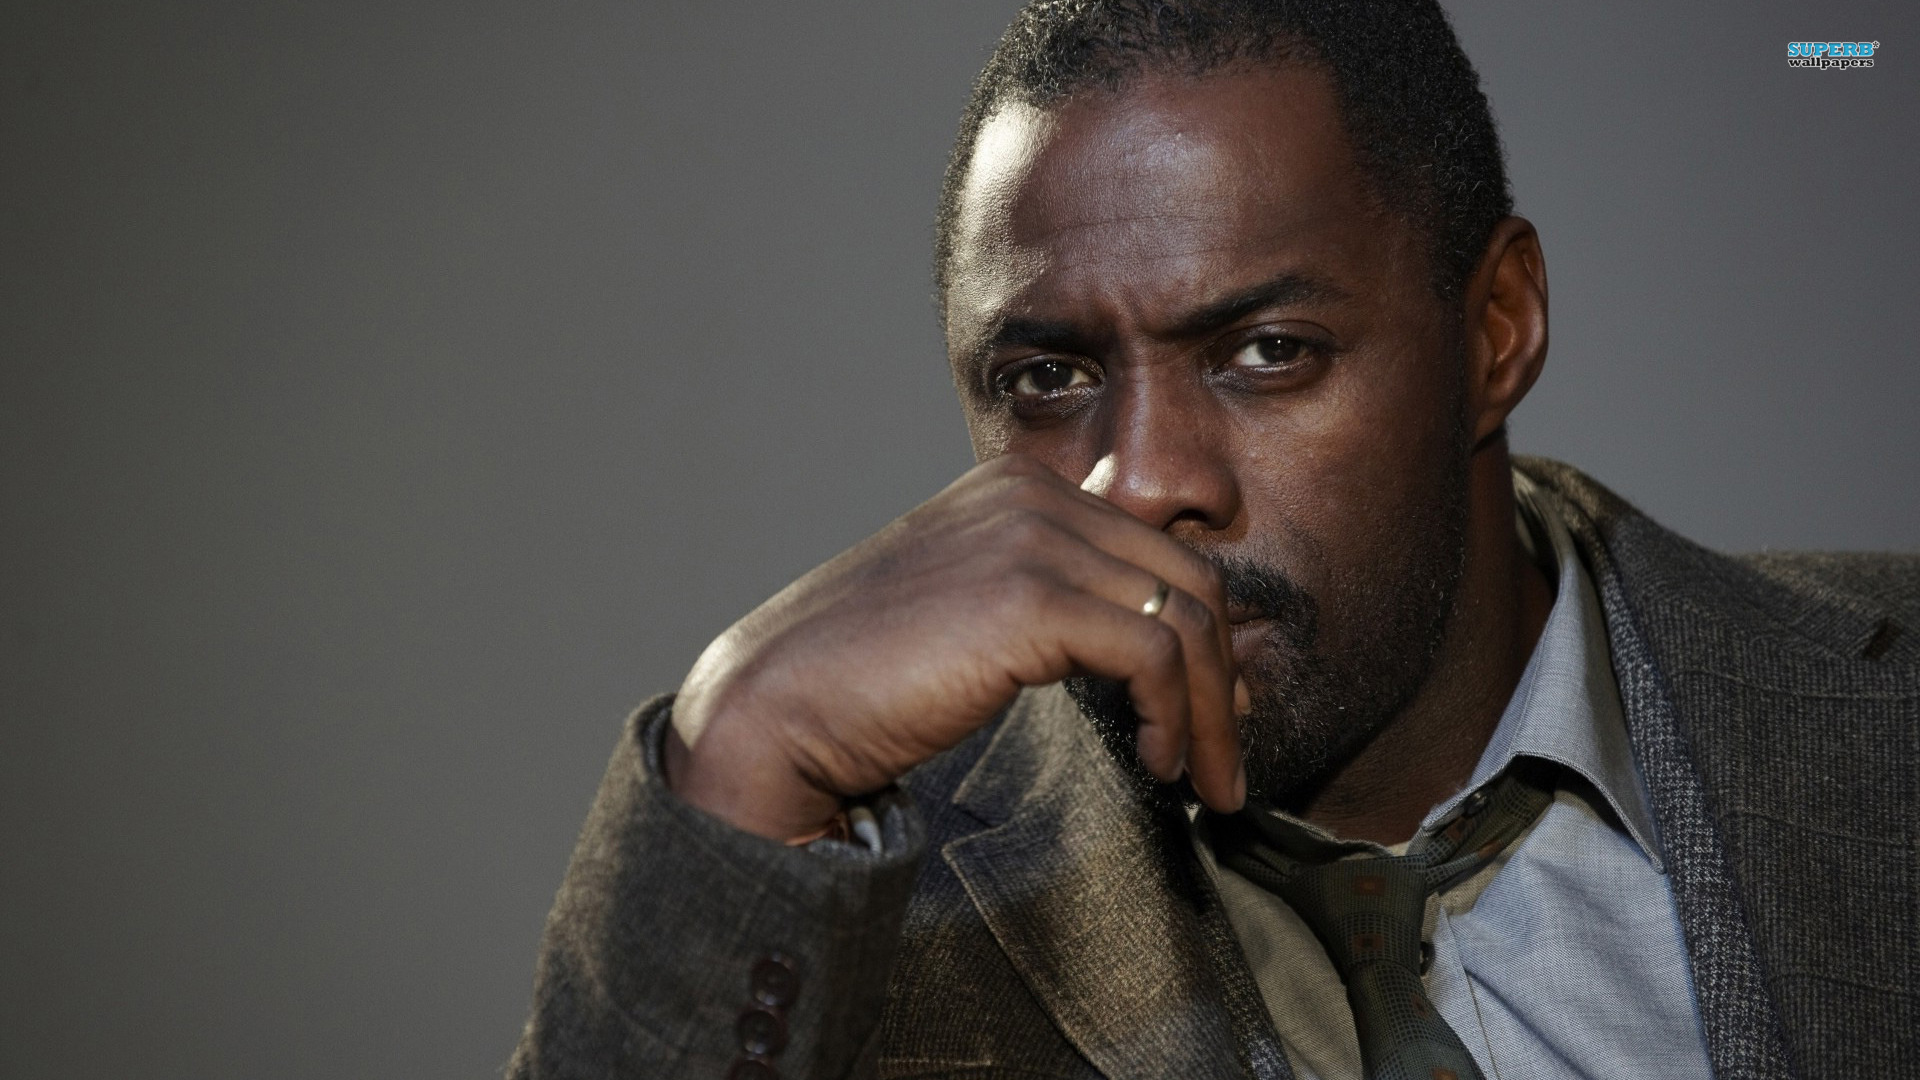 Idris Elba images Idris Elba HD wallpaper and background photos 1920x1080